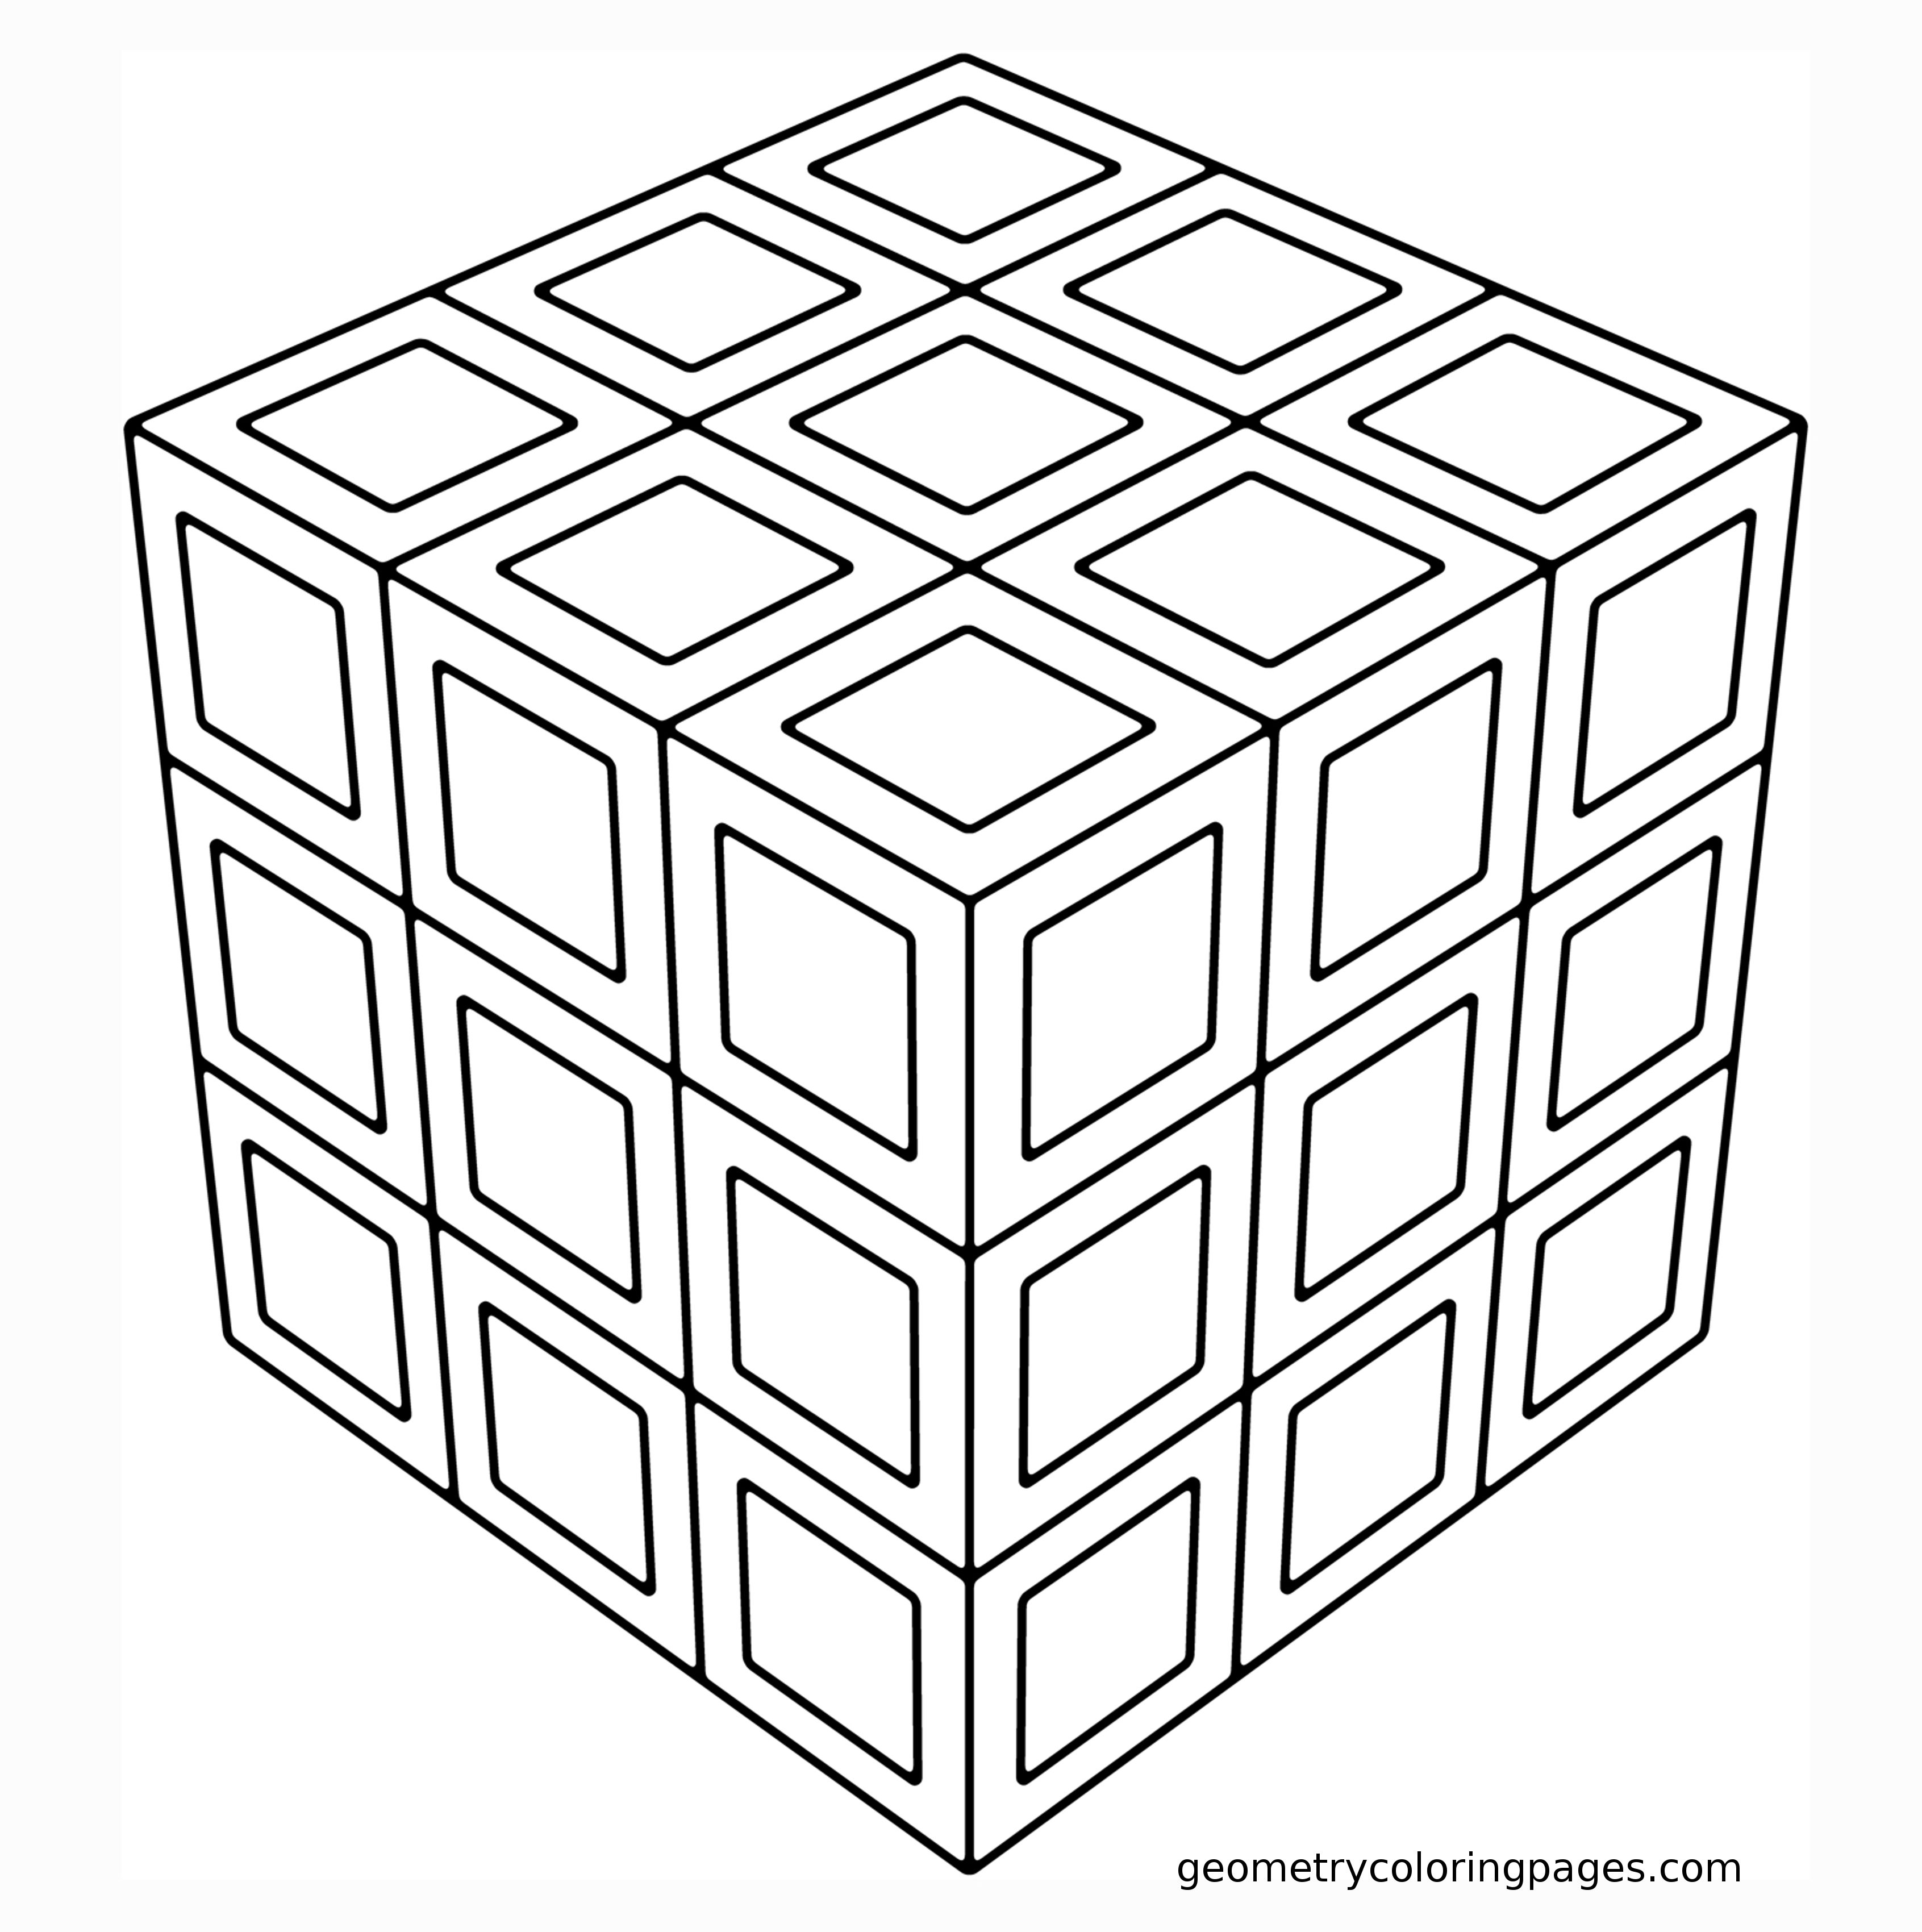 Coloring: Coloring Pages Geometric Art Design Patterns